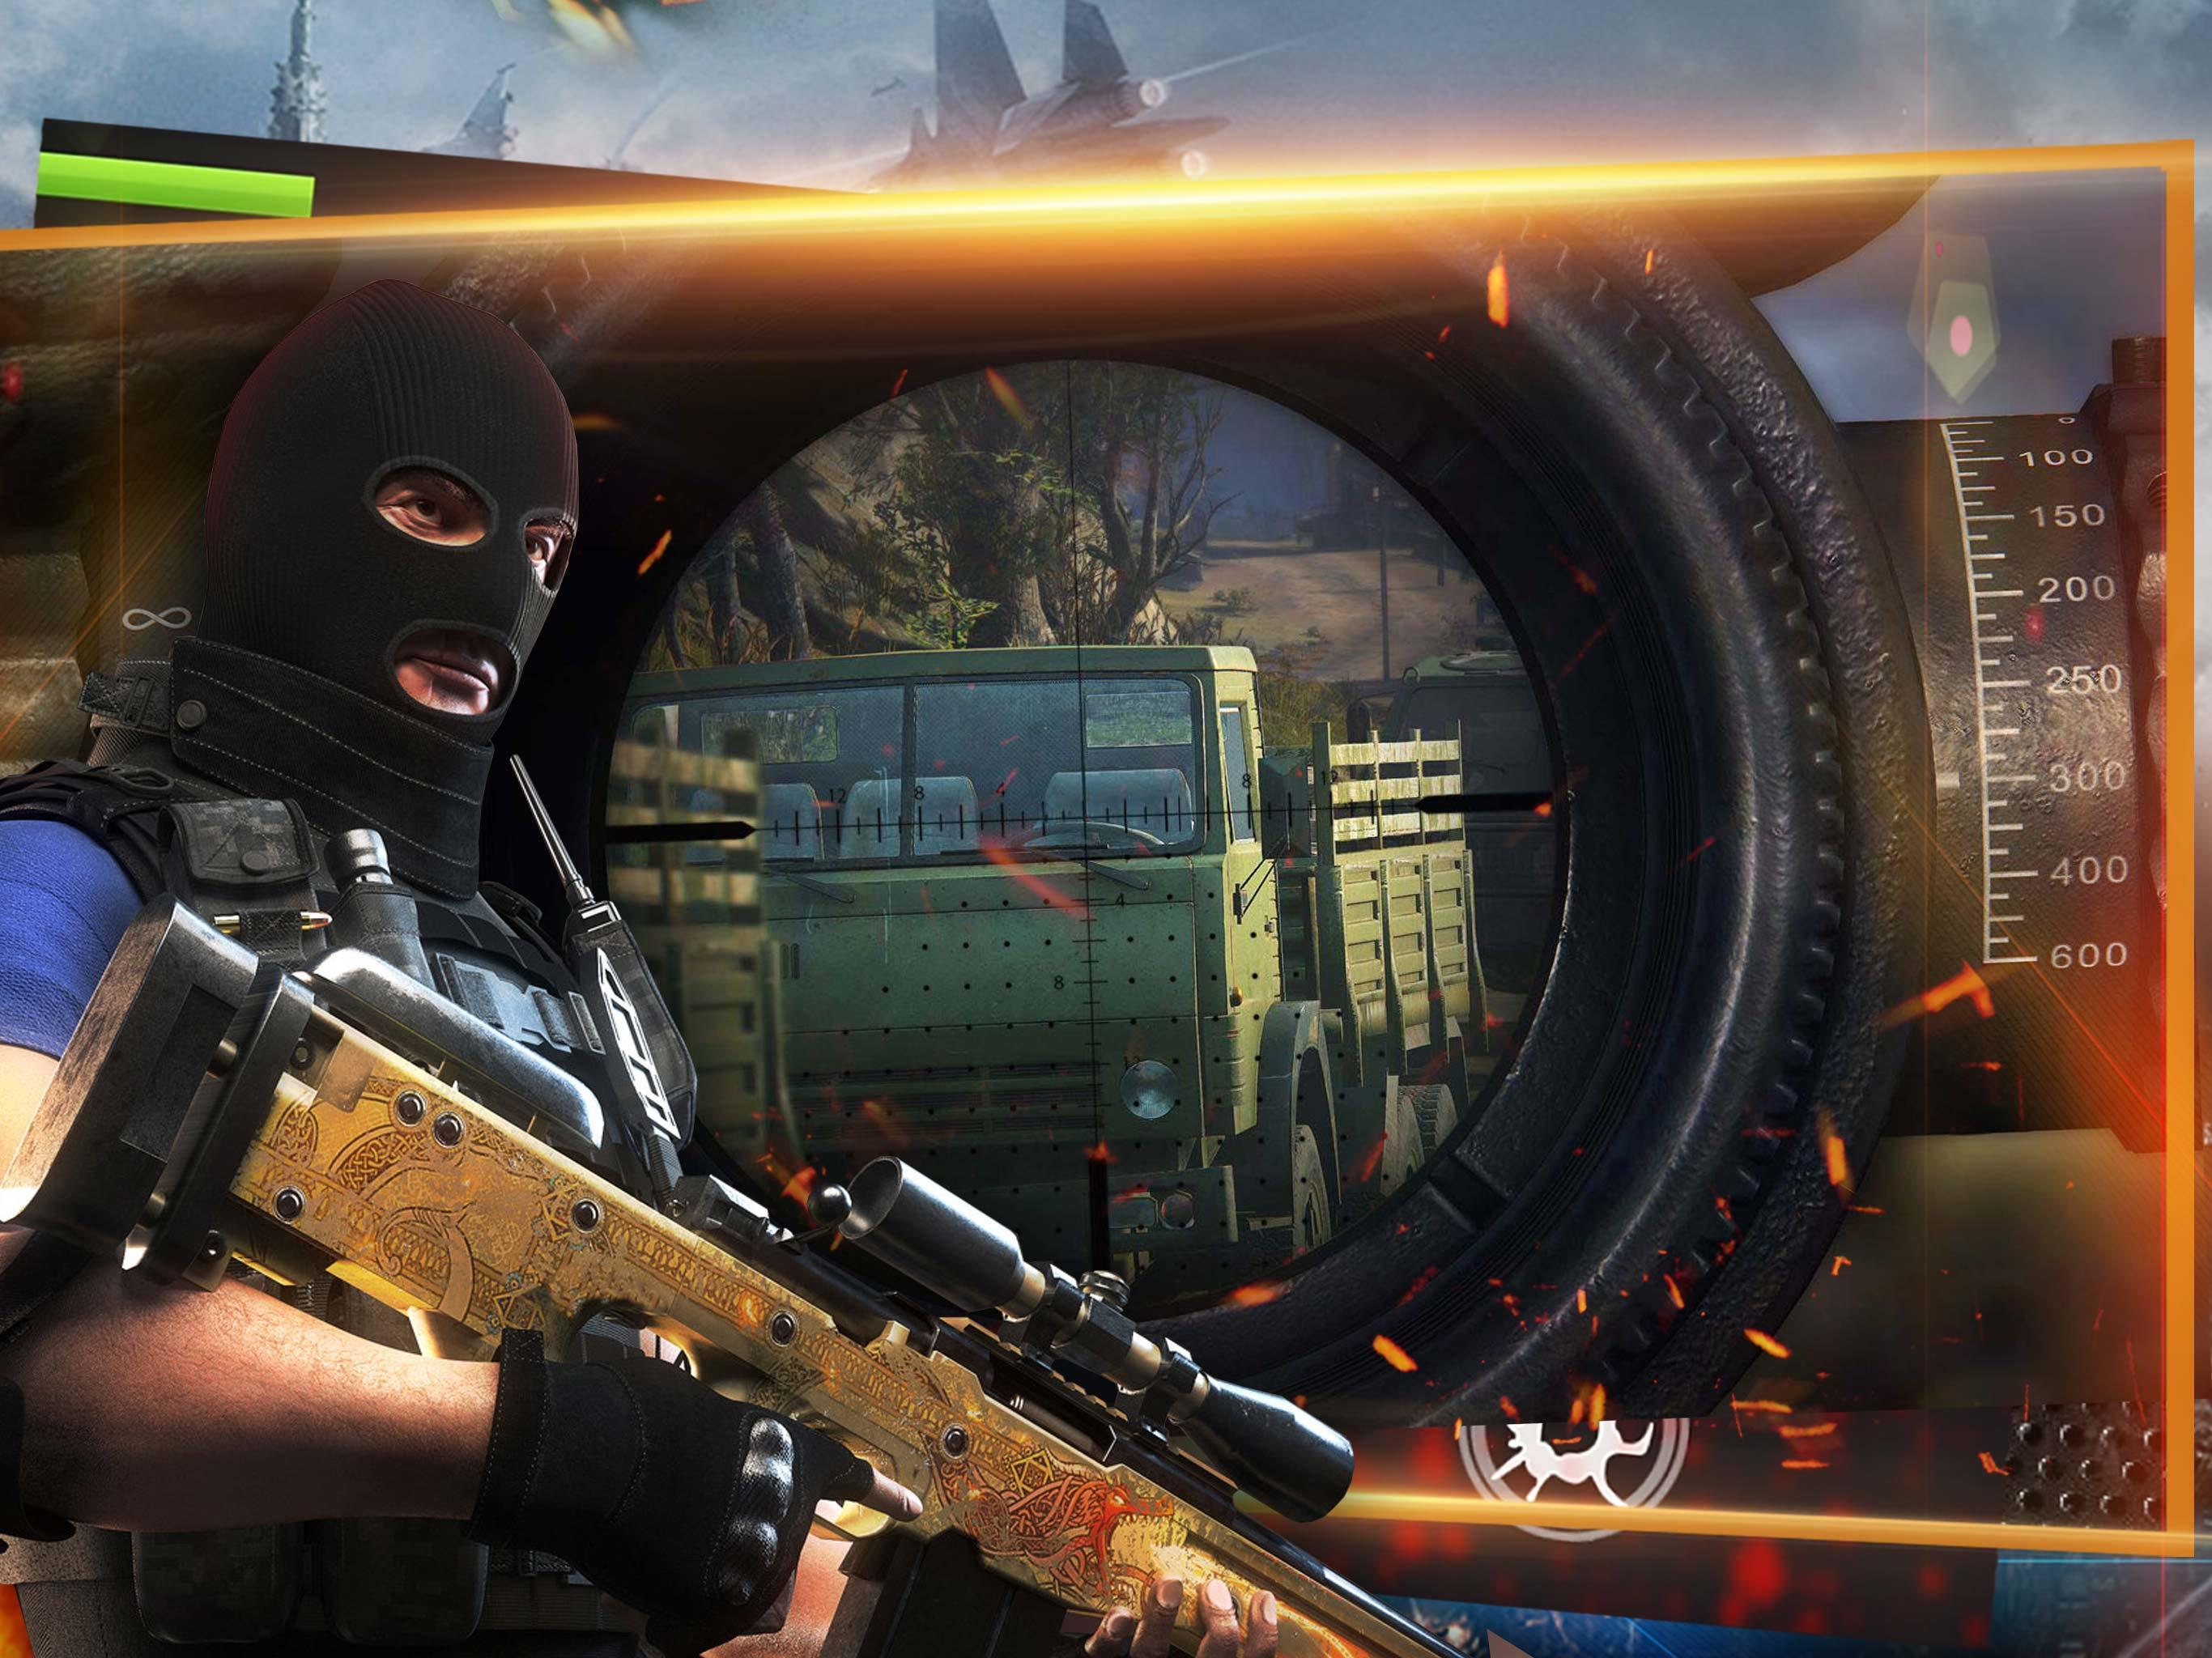 Sniper 3D Shooter- Gun Shooting Games for Android - APK Download